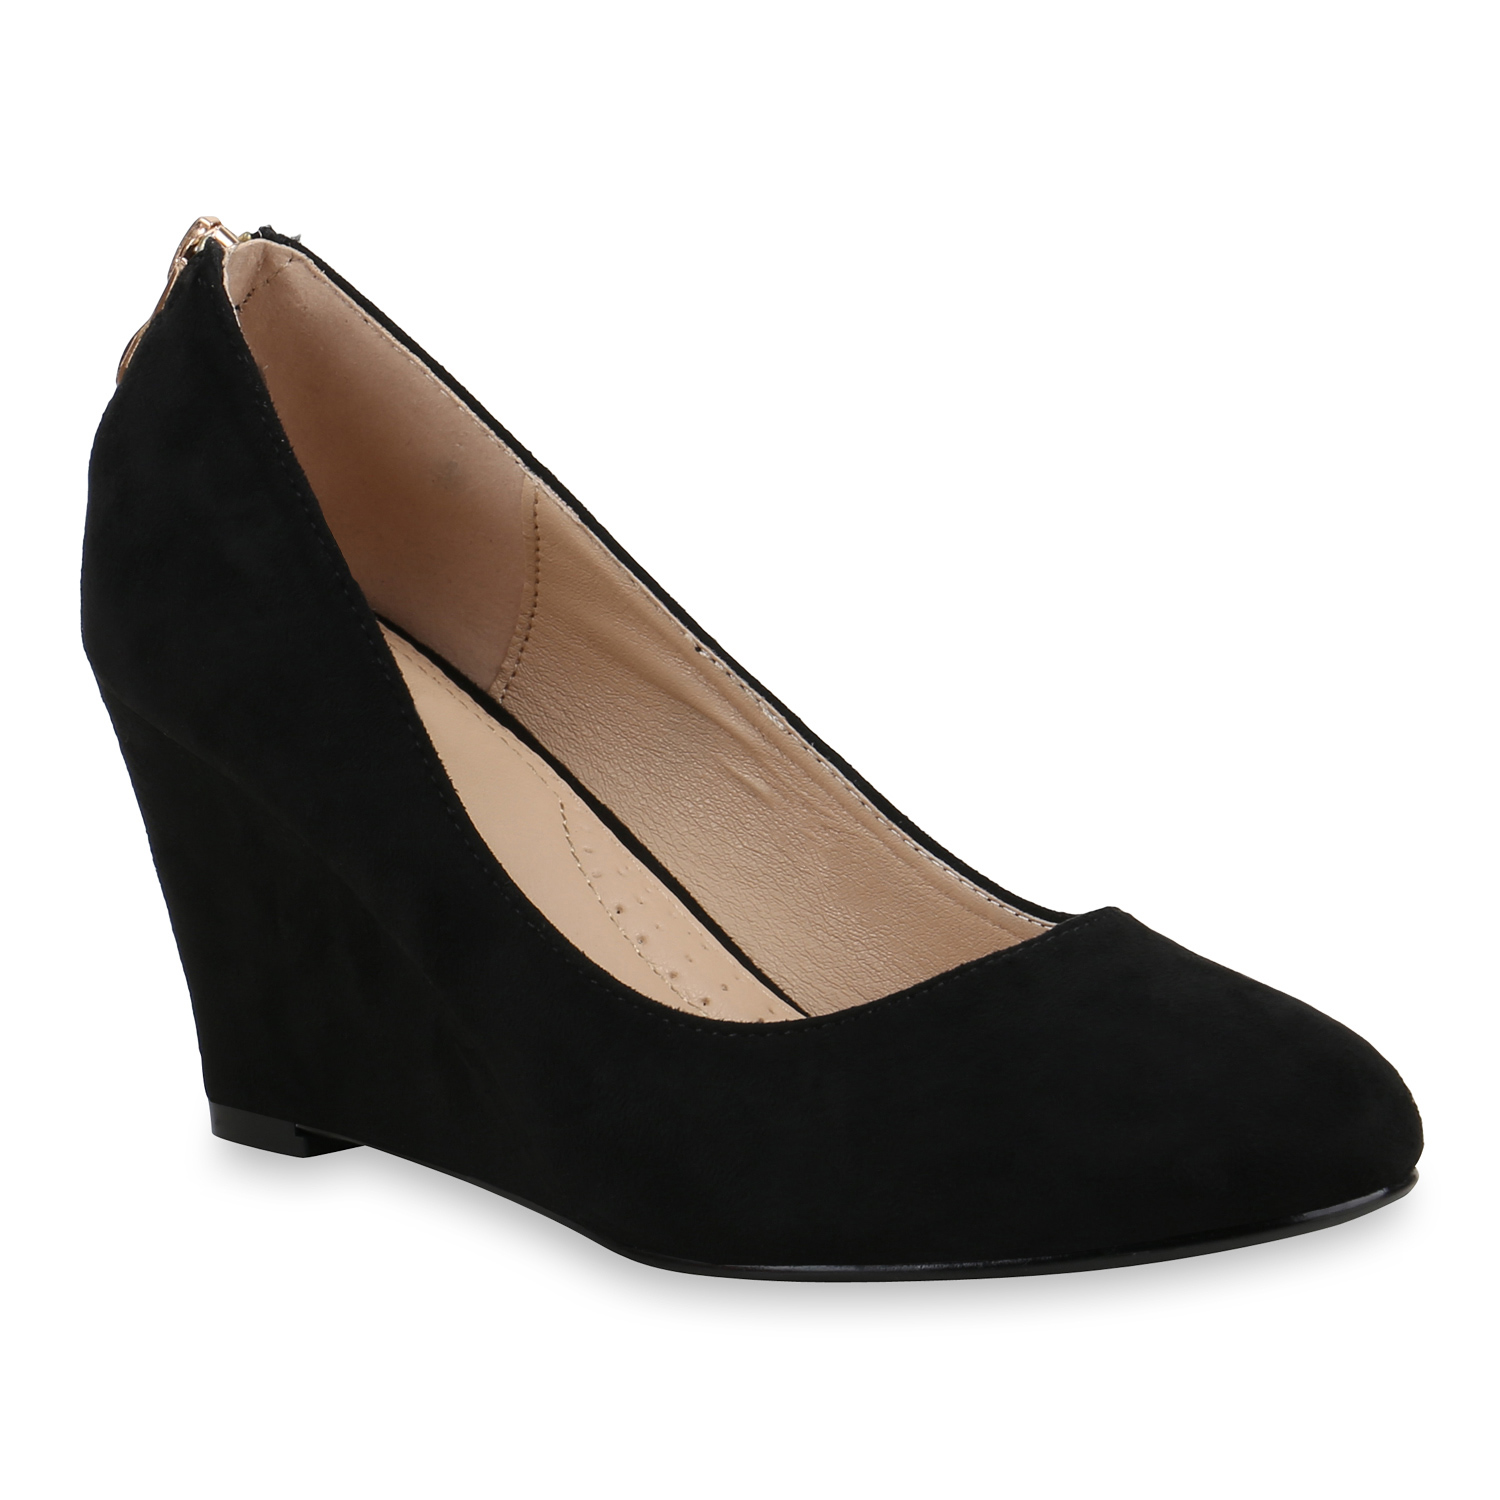 Damen Pumps Keilpumps - Schwarz